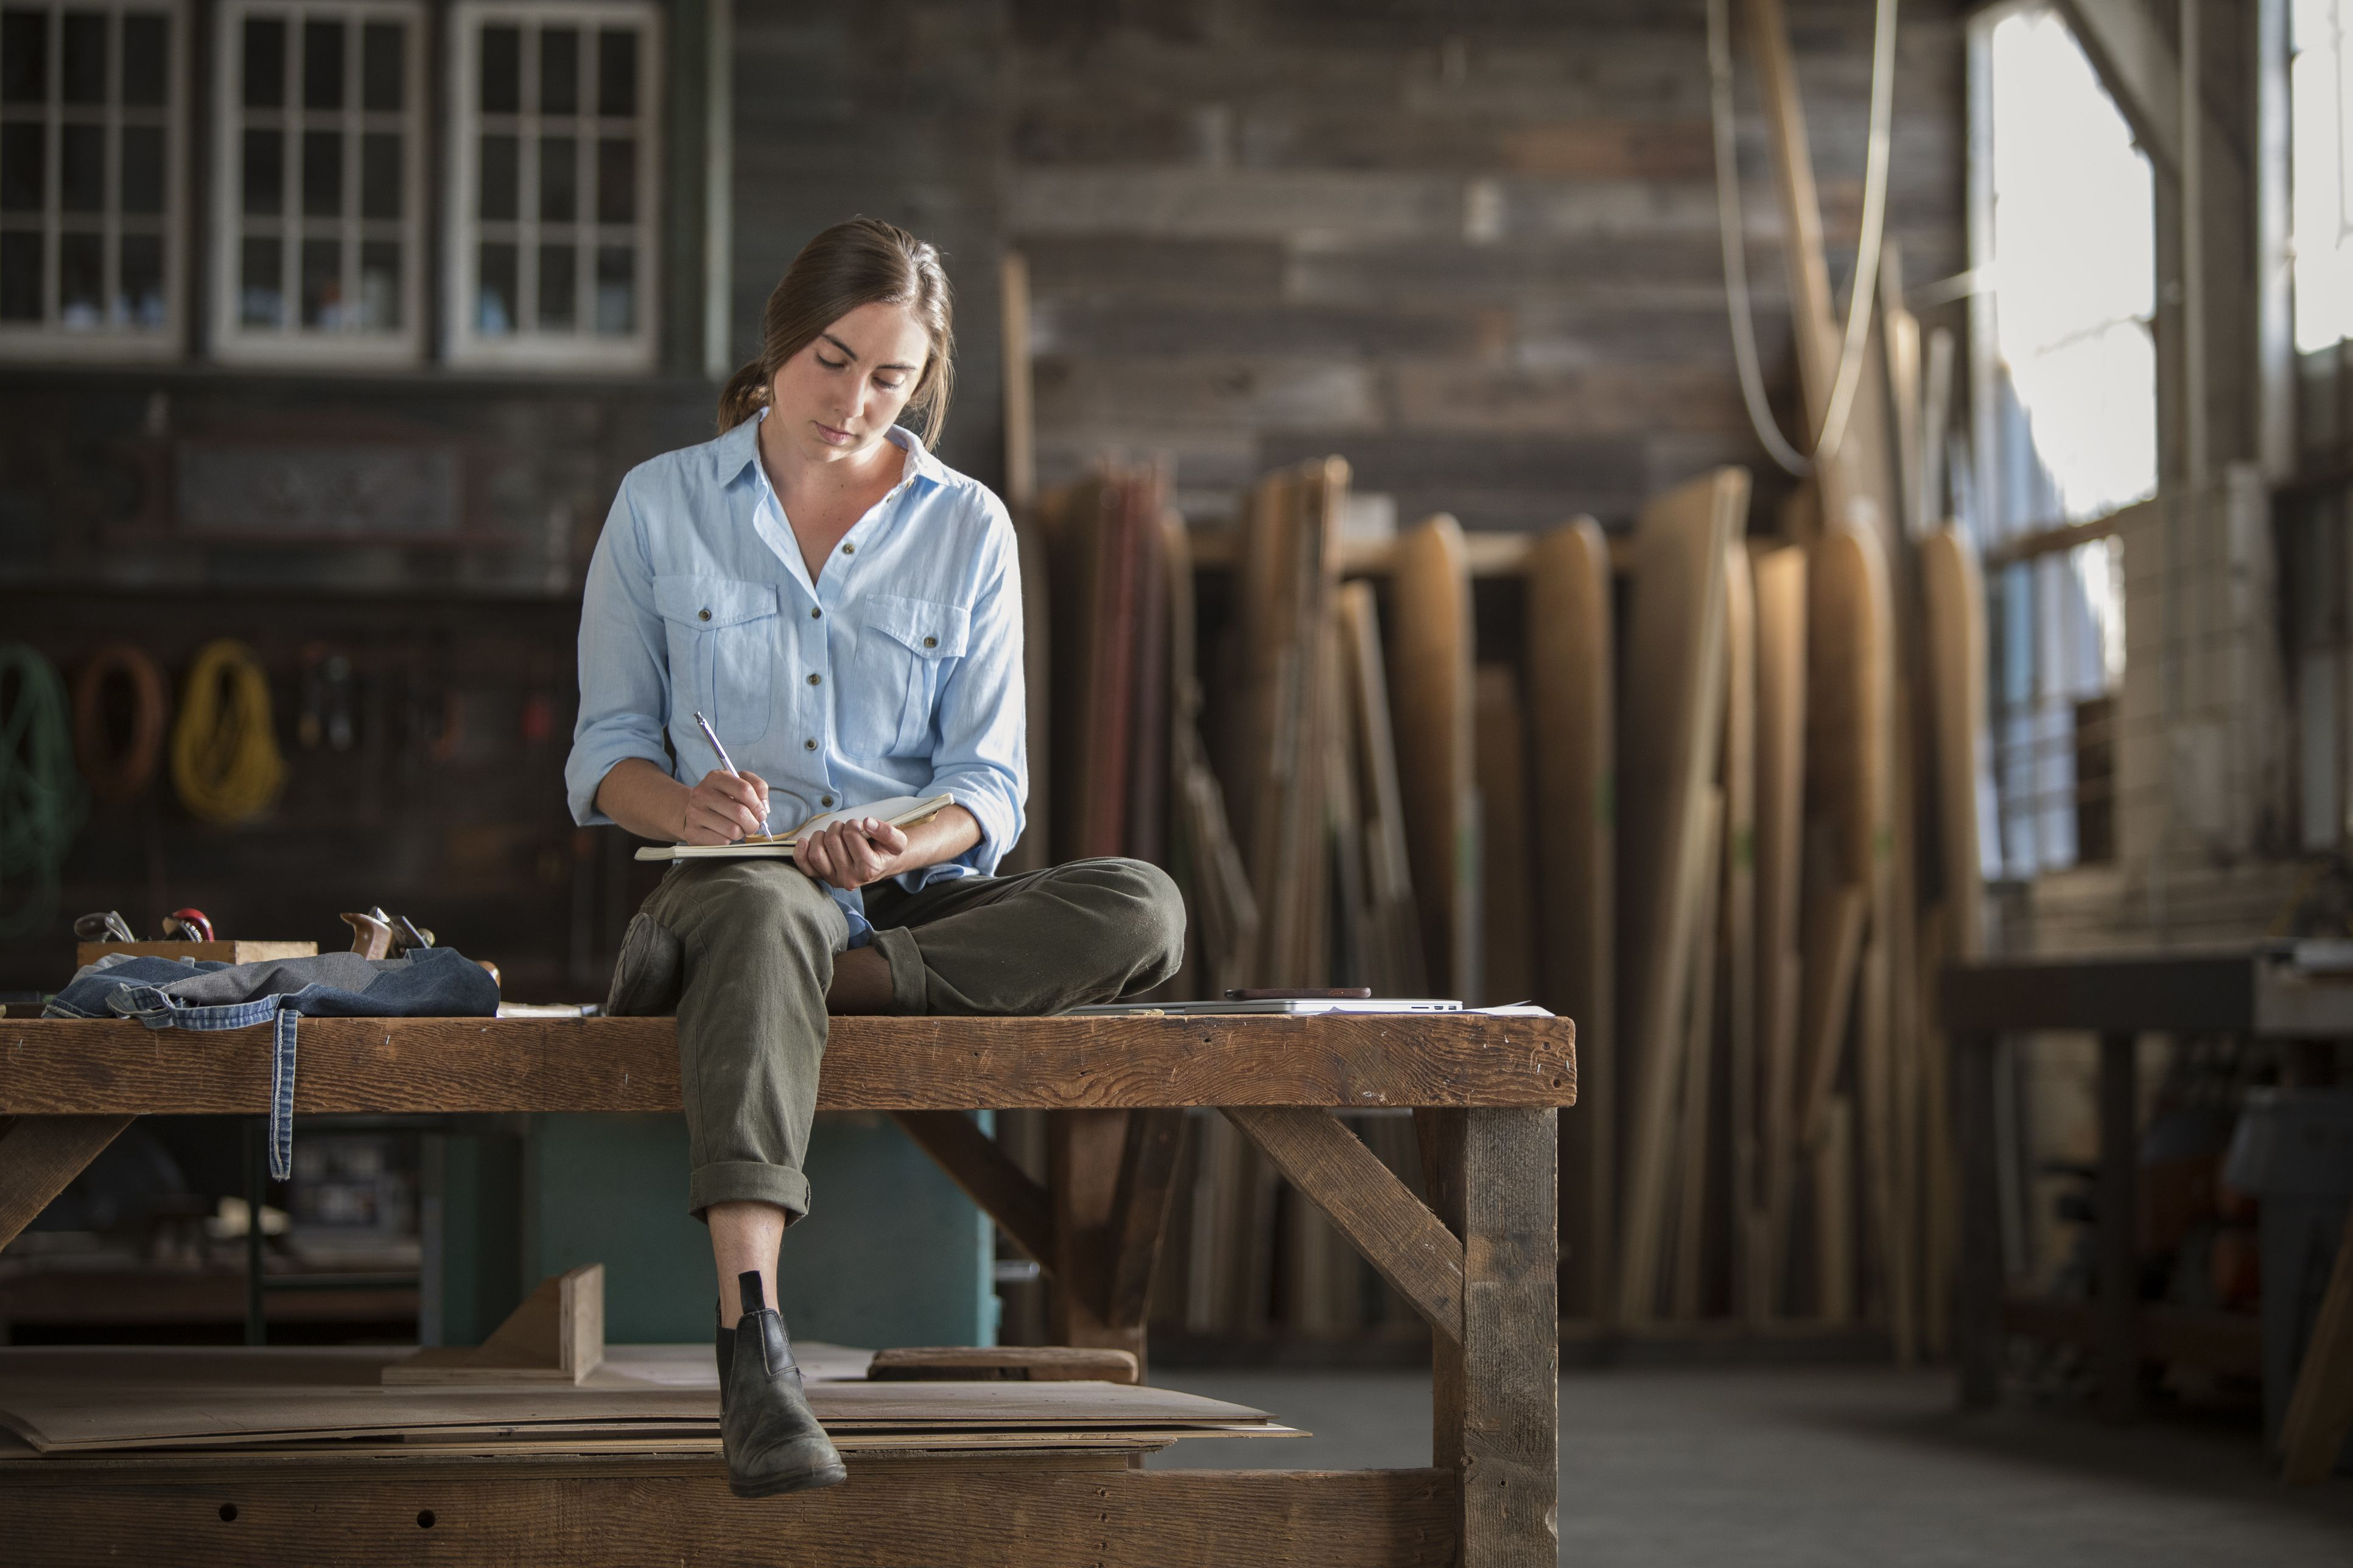 Young Woman Entrepreneur in Her Element Sits on Workbench in Lofty Maker Space, Calculating the Day's Design Challenges